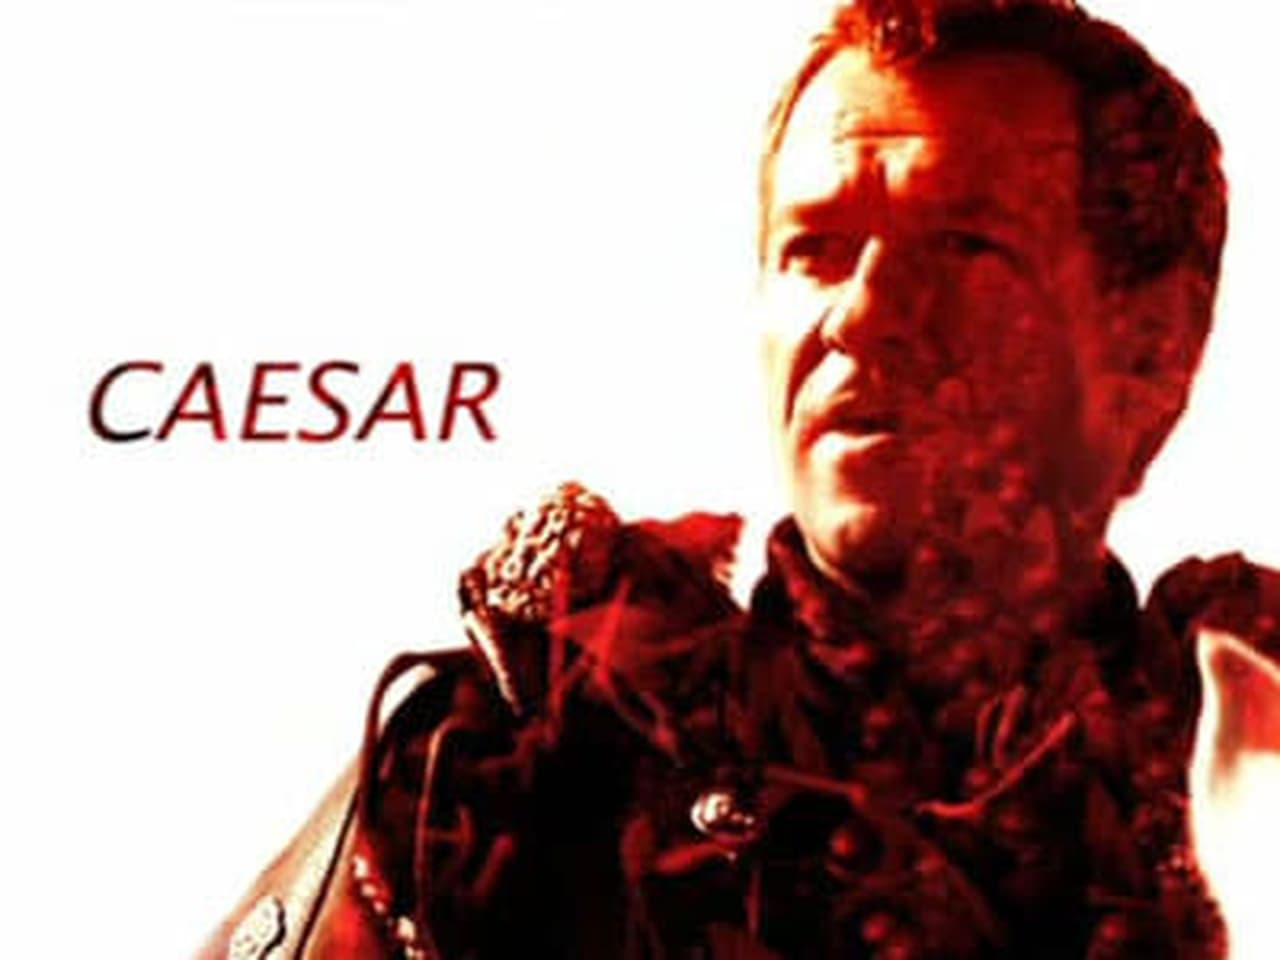 Ancient Rome The Rise and Fall of an Empire Episode: Caesar